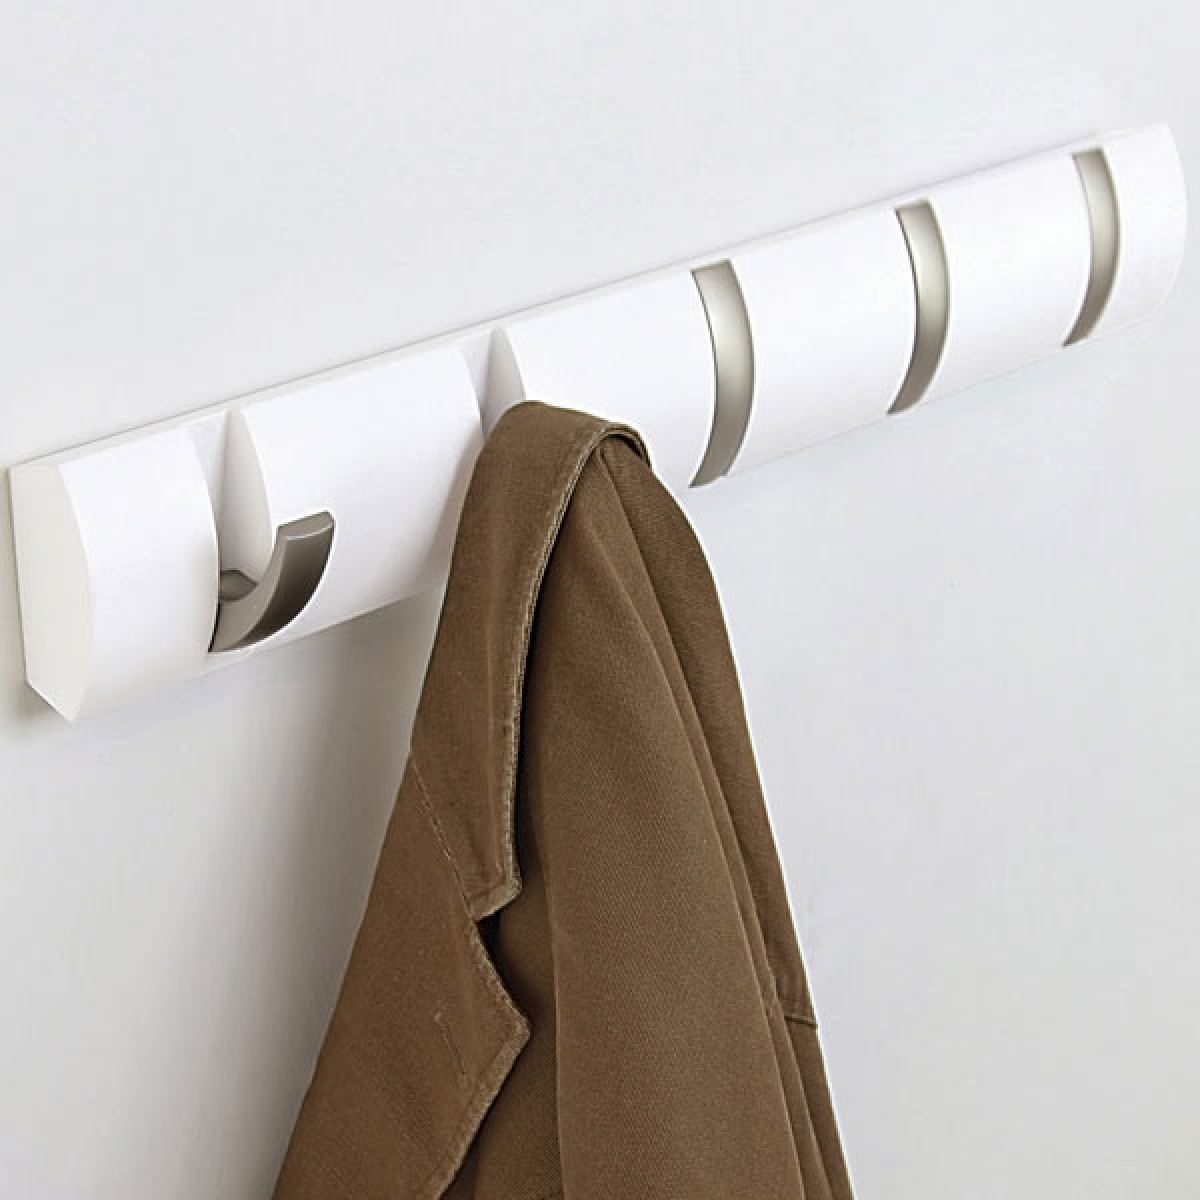 Unusual Coat Hooks modern & funky coat hooks - red candy